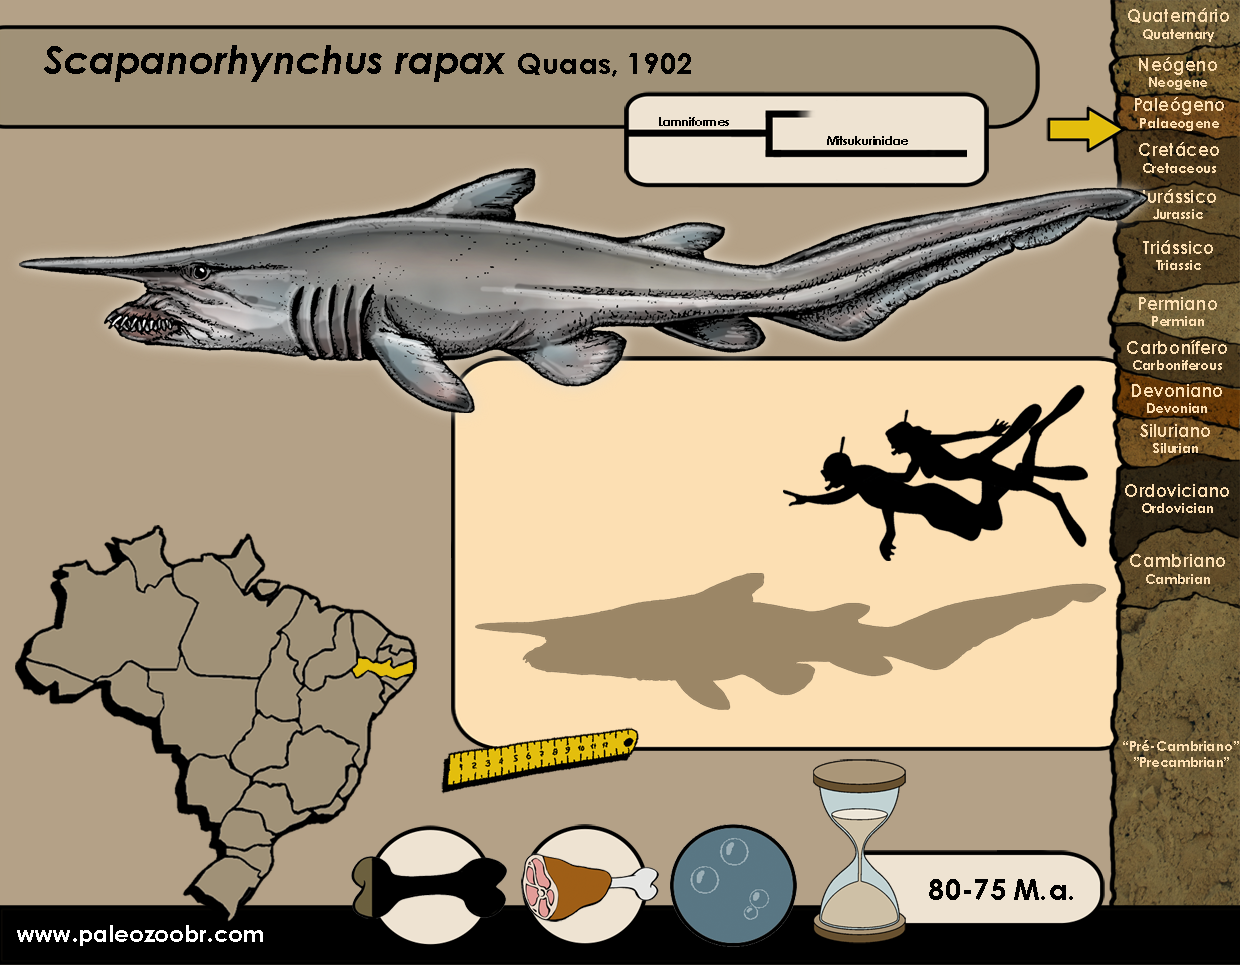 Scapanorhynchus rapax